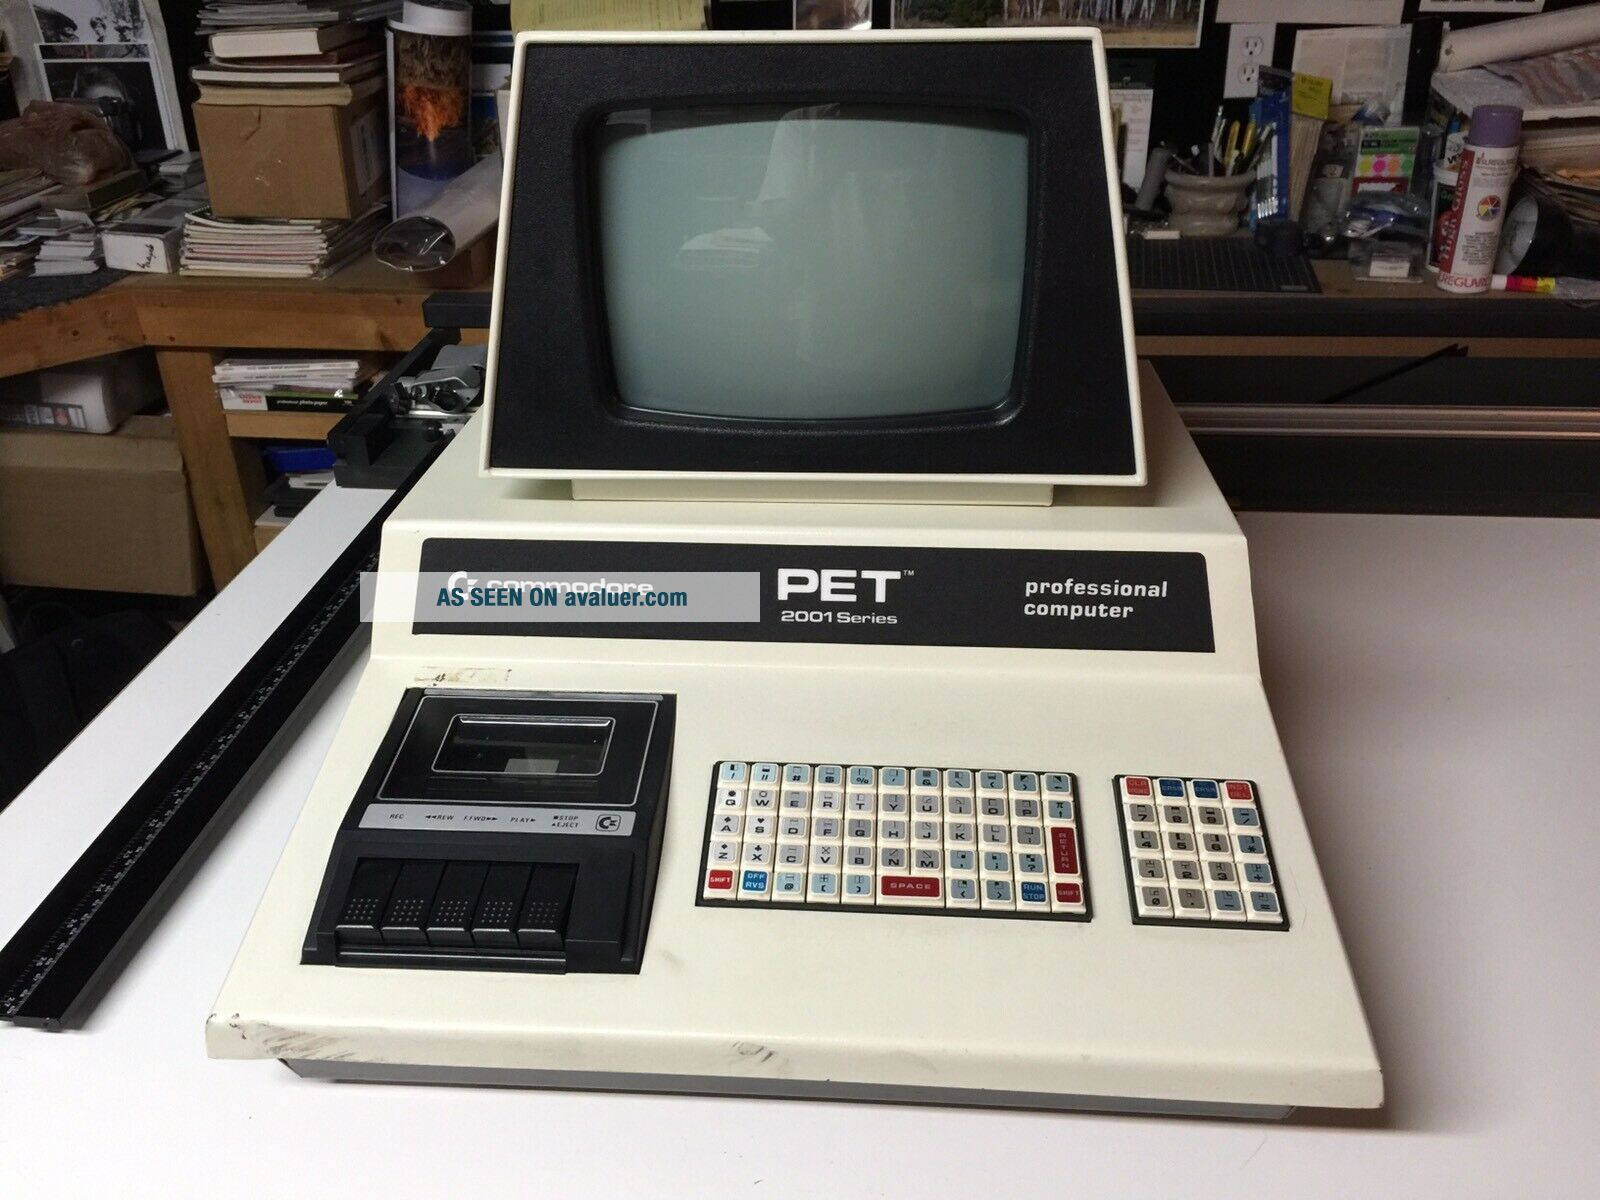 Commodore PET 2001 - 8 Computer - Chicklet Keyboard & Cassette -